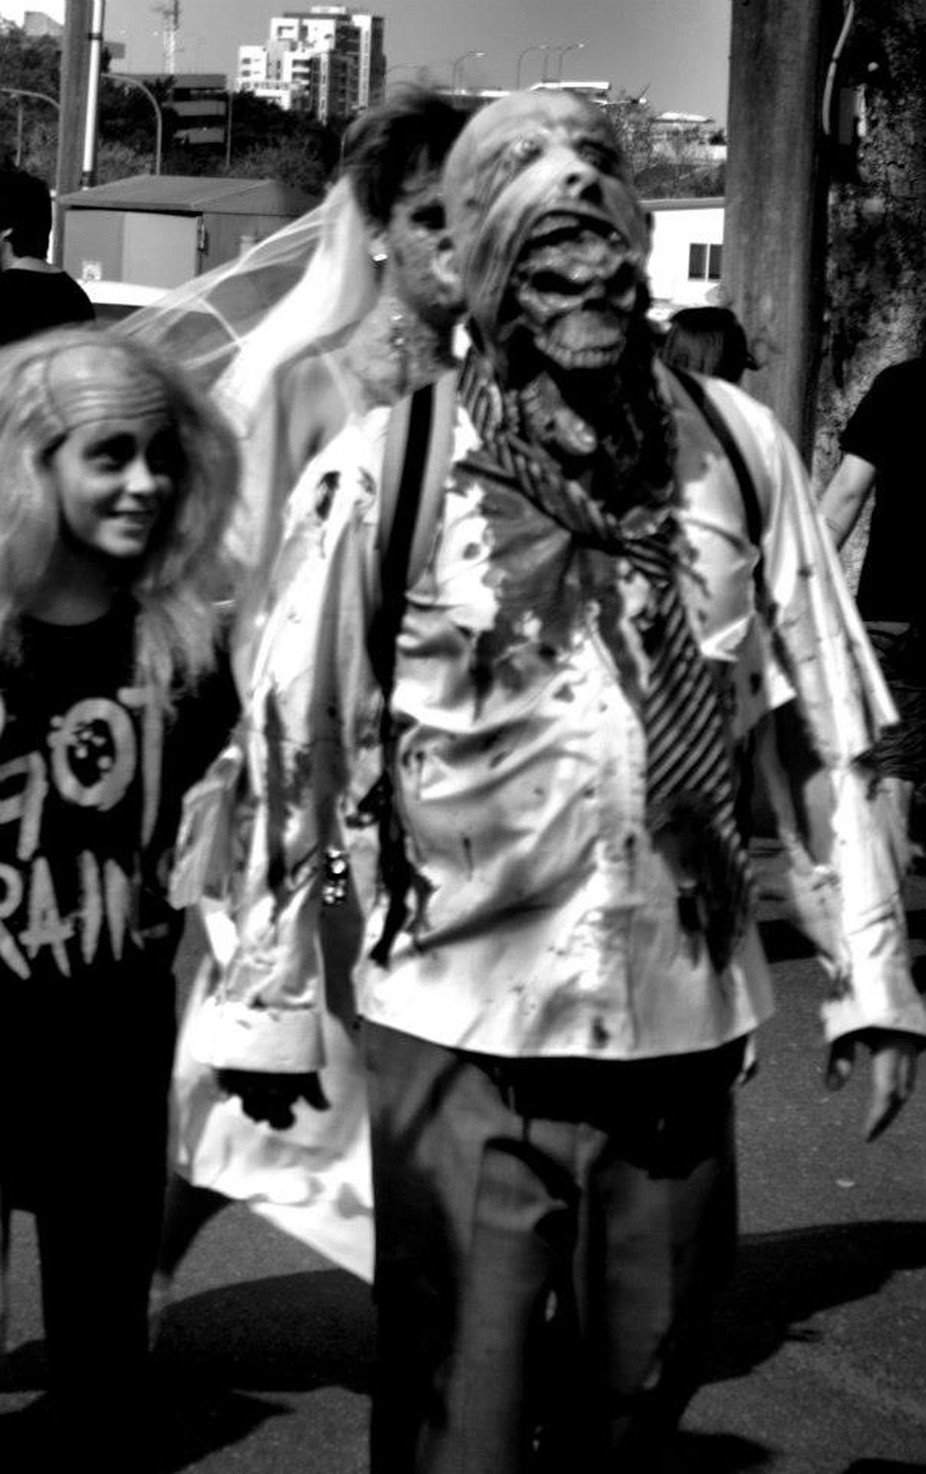 The  Brisbane Zombie Walk 2012! The zombies came out to play.